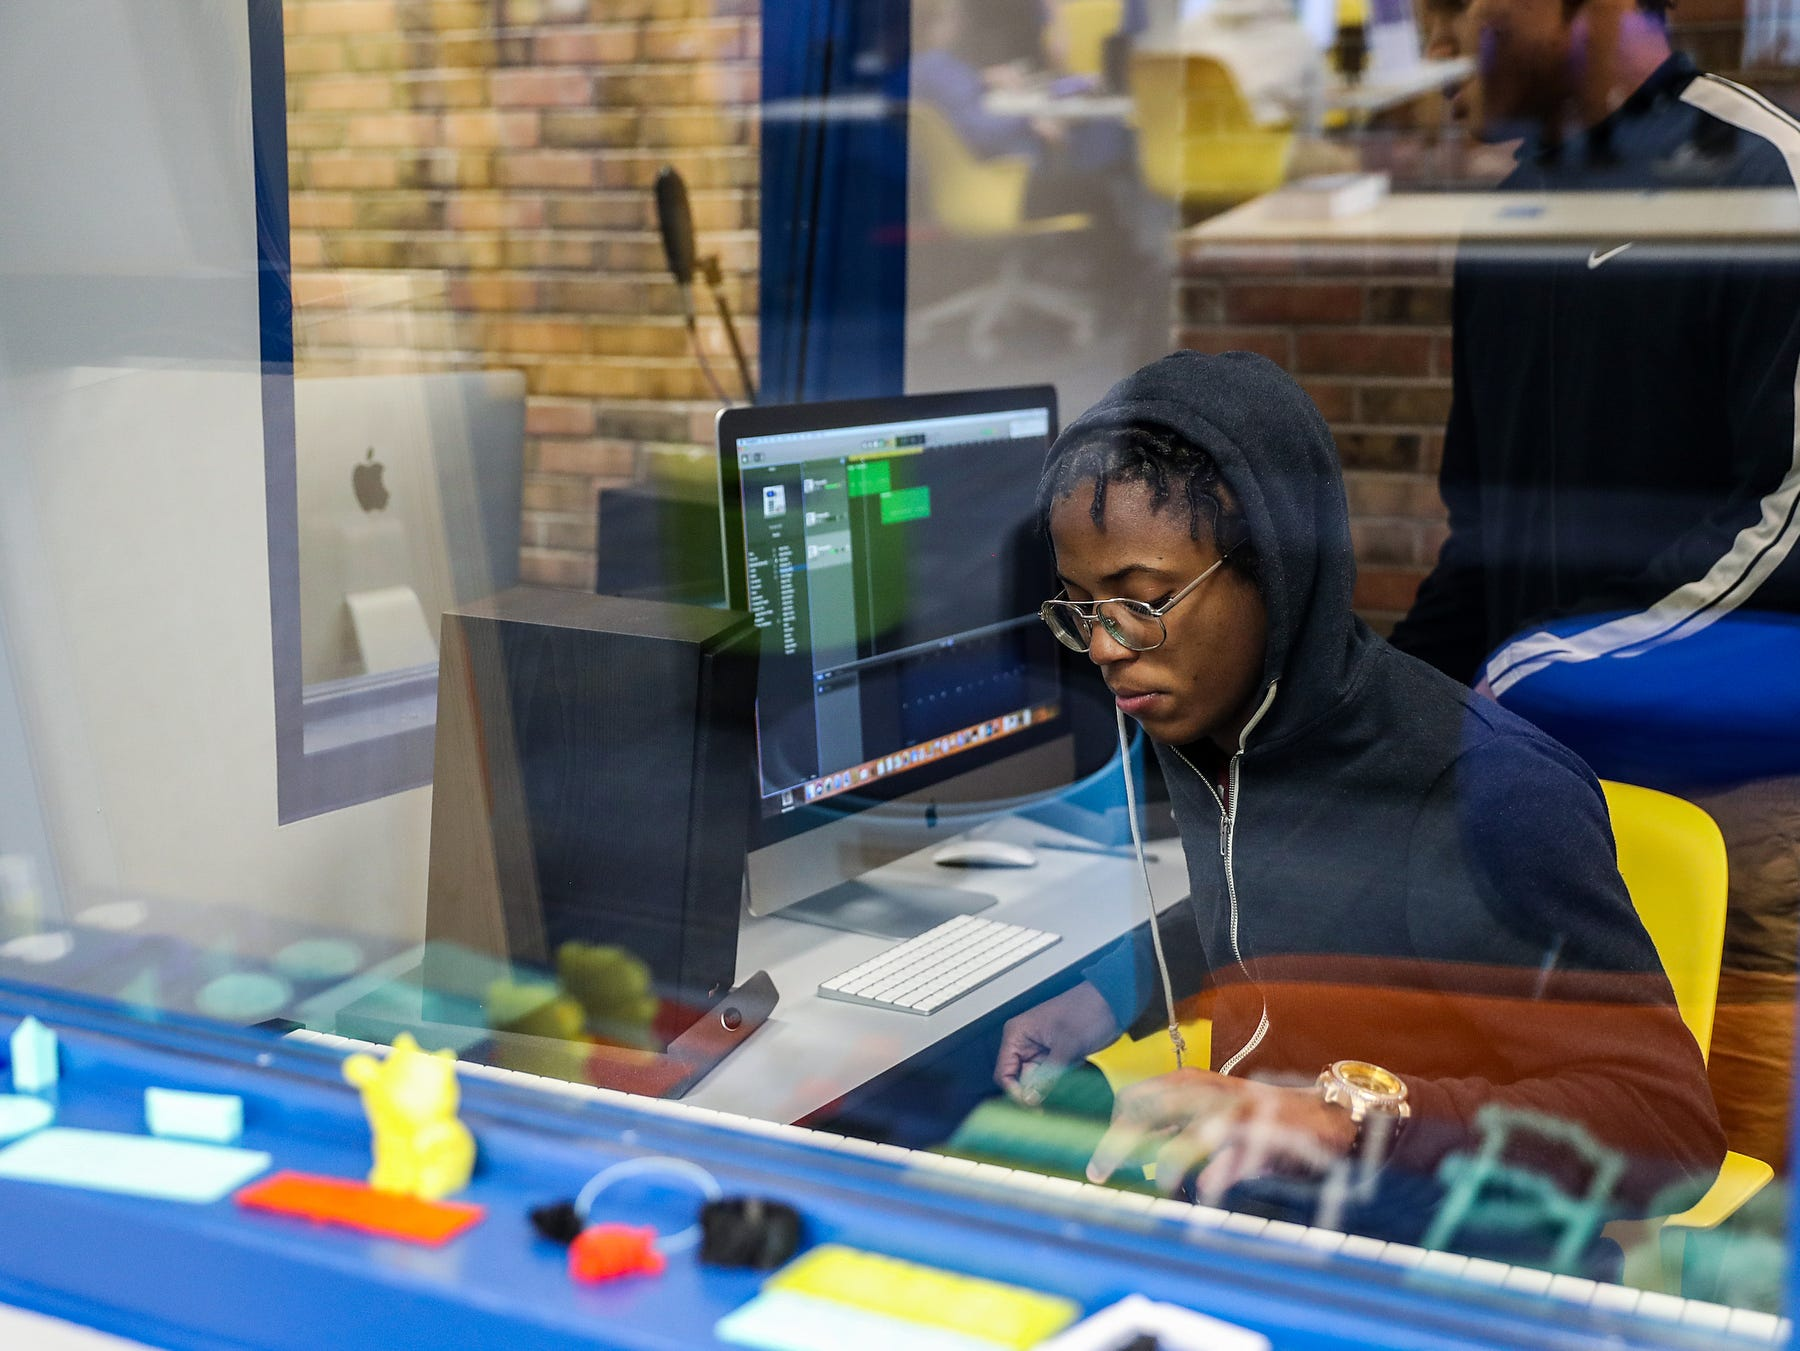 Jowan Easton, 15, pictured in front, works with Markell Smith, 14, in a recording booth during the opening of the Best Buy Teen Tech Center at the MLK Community Center in Indianapolis, Tuesday, Jan. 29, 2019.